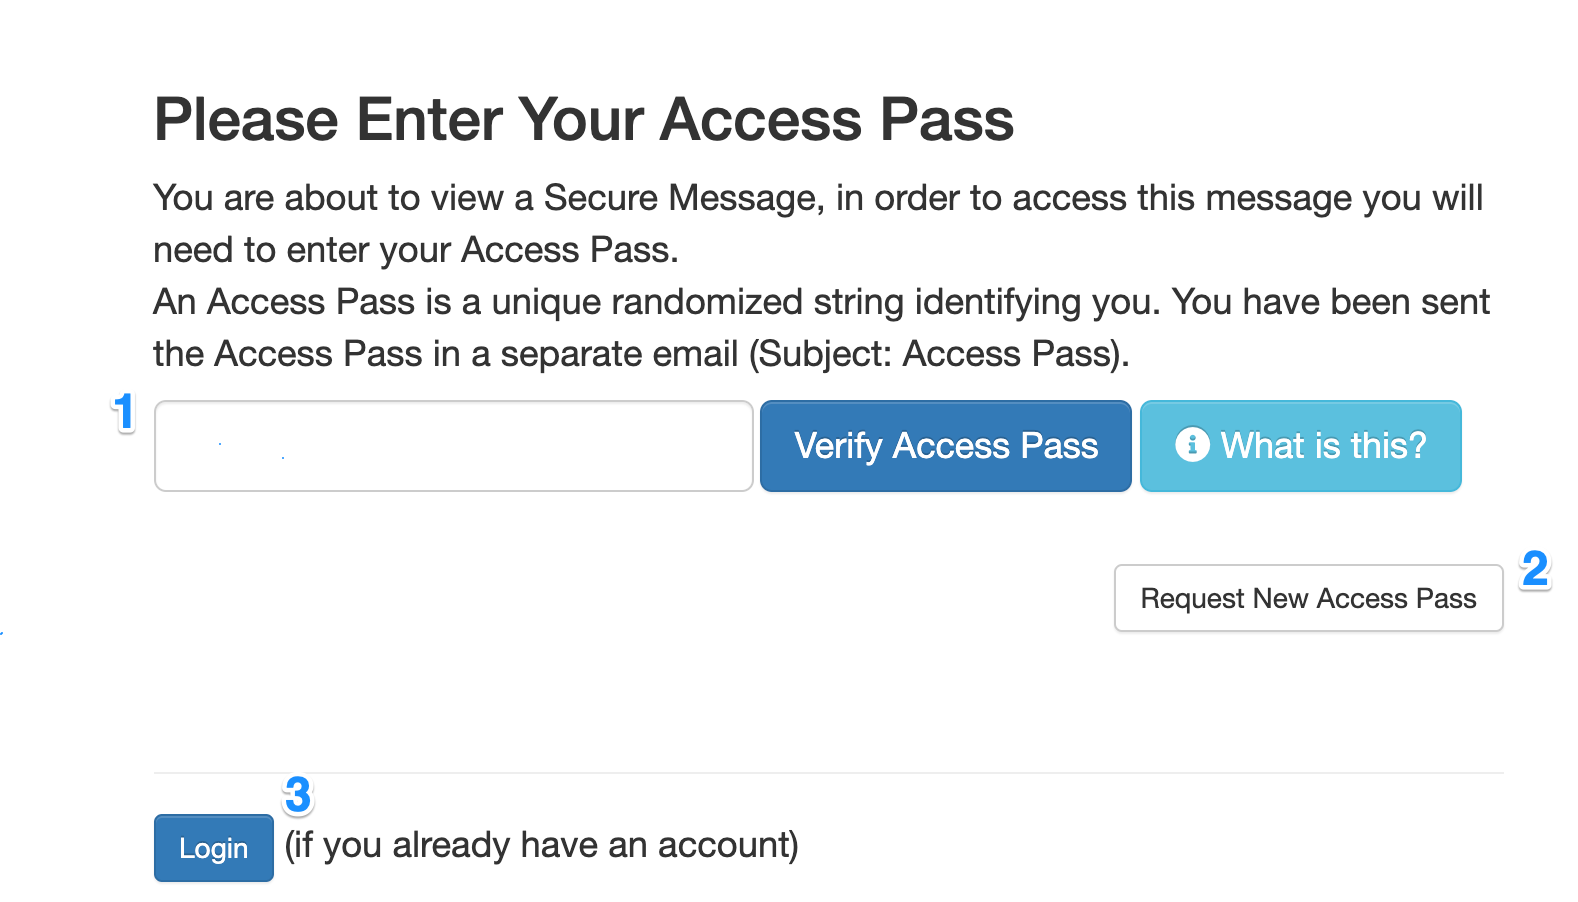 images/authentication/access_pass/access_pass_authentication_screen.png